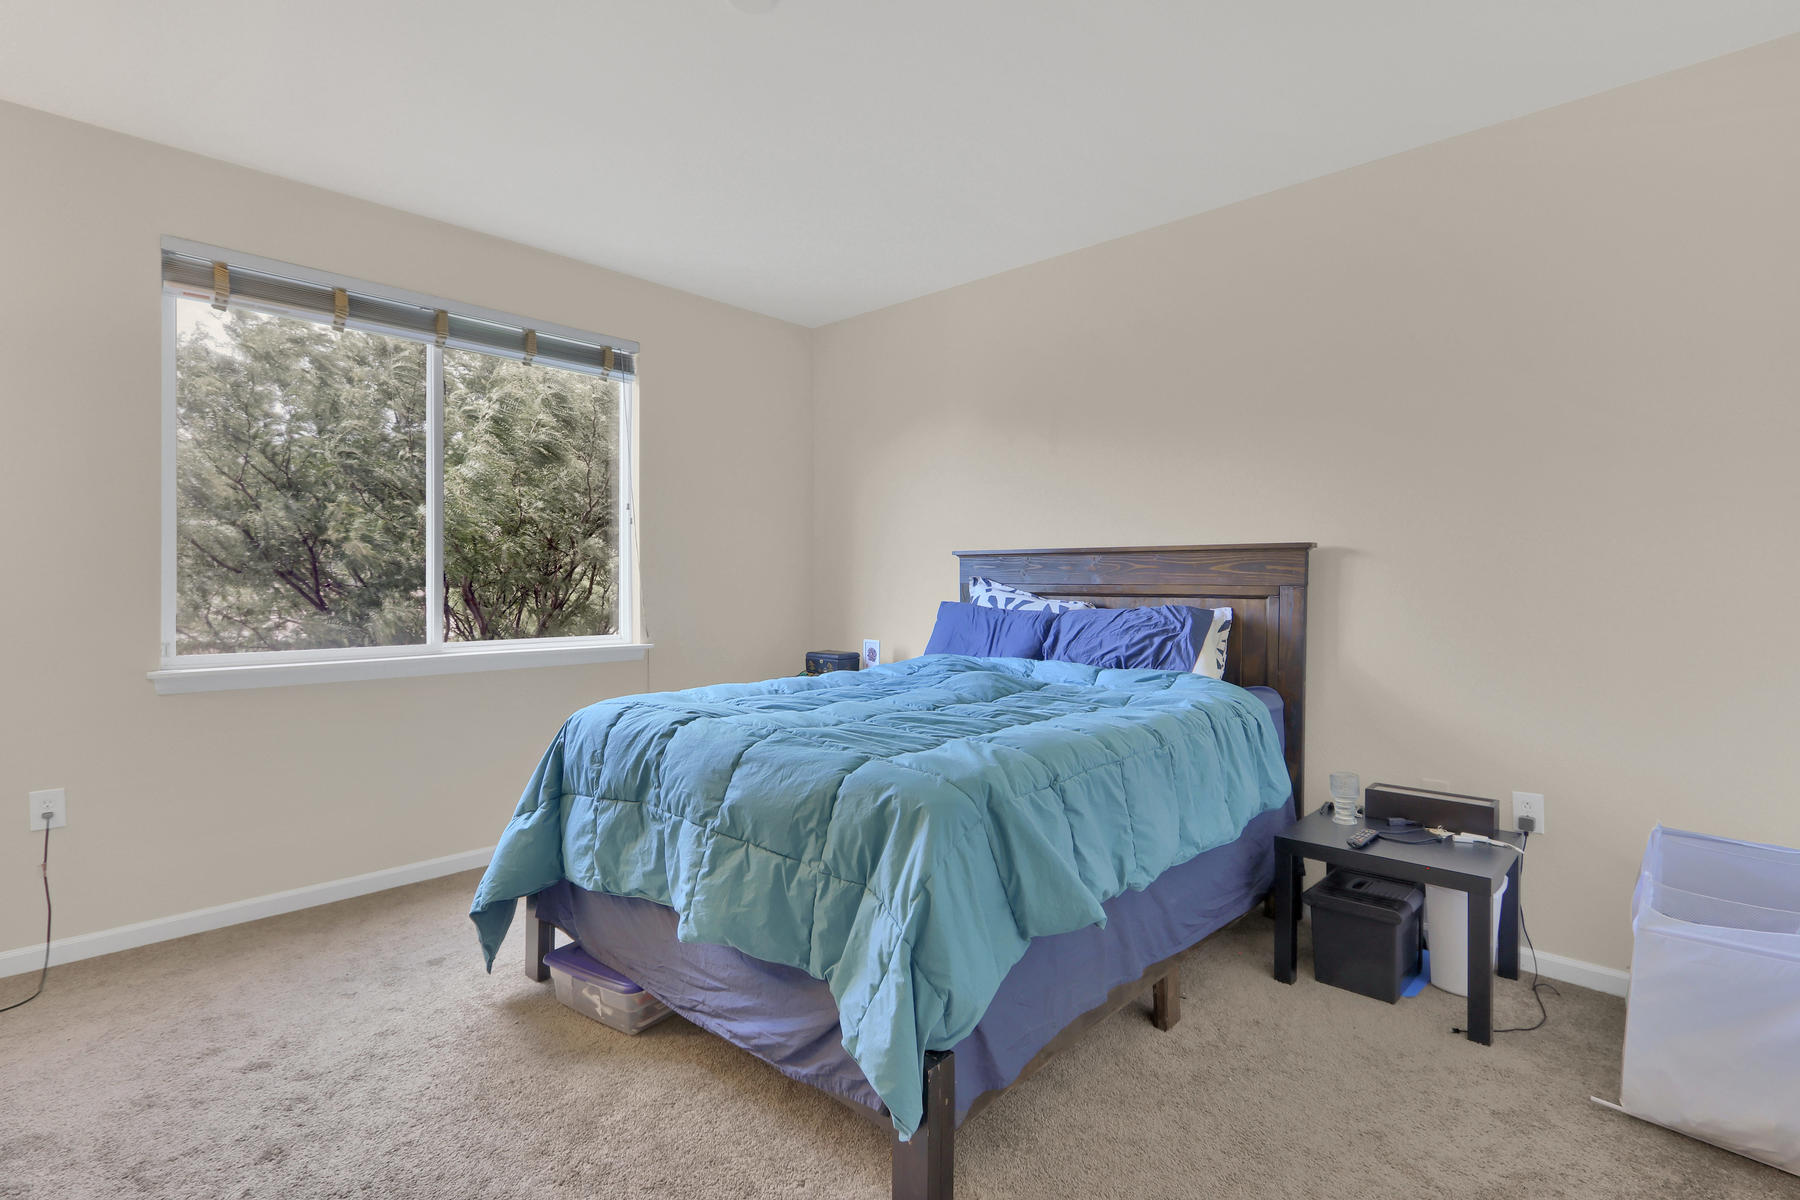 10089 W 55th Drive 204 Arvada-015-018-Bedroom-MLS_Size.jpg